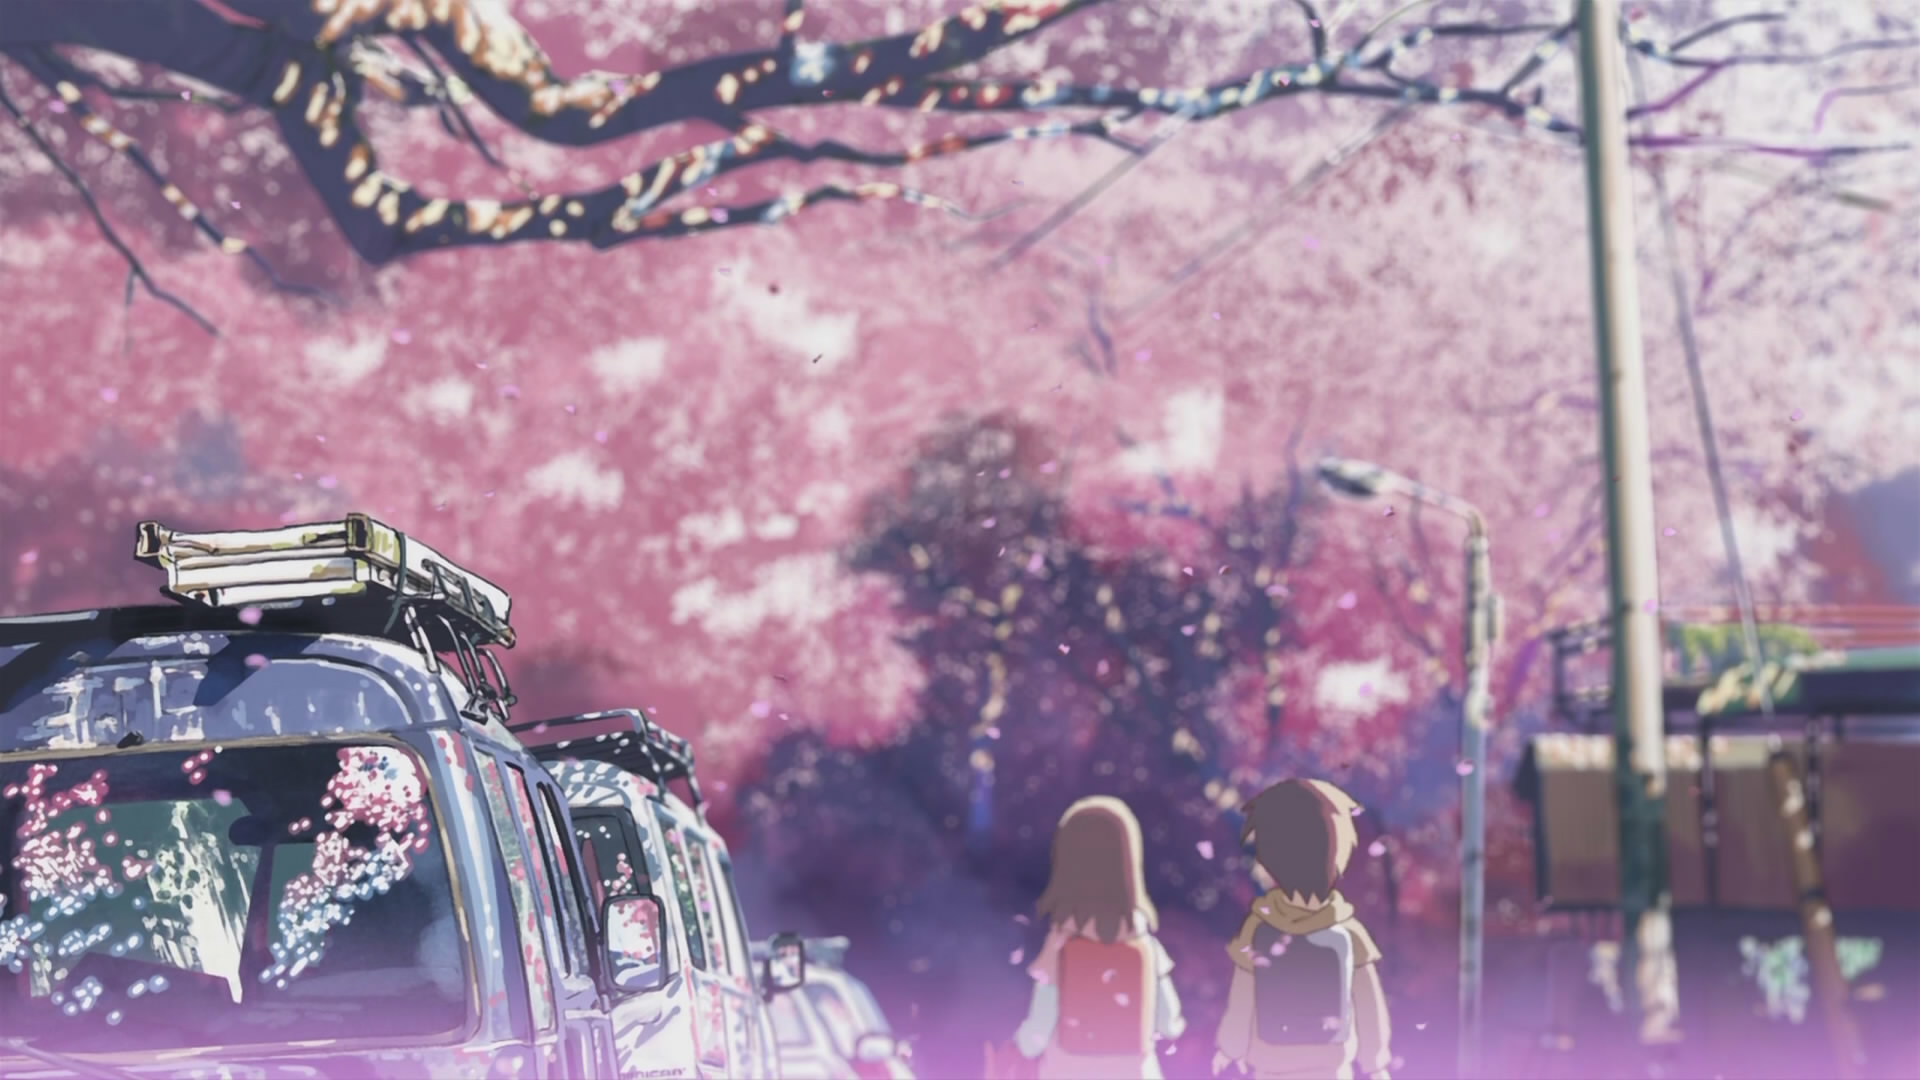 5 Centimeters Per Second  C2 B Centimeters Per Second Image